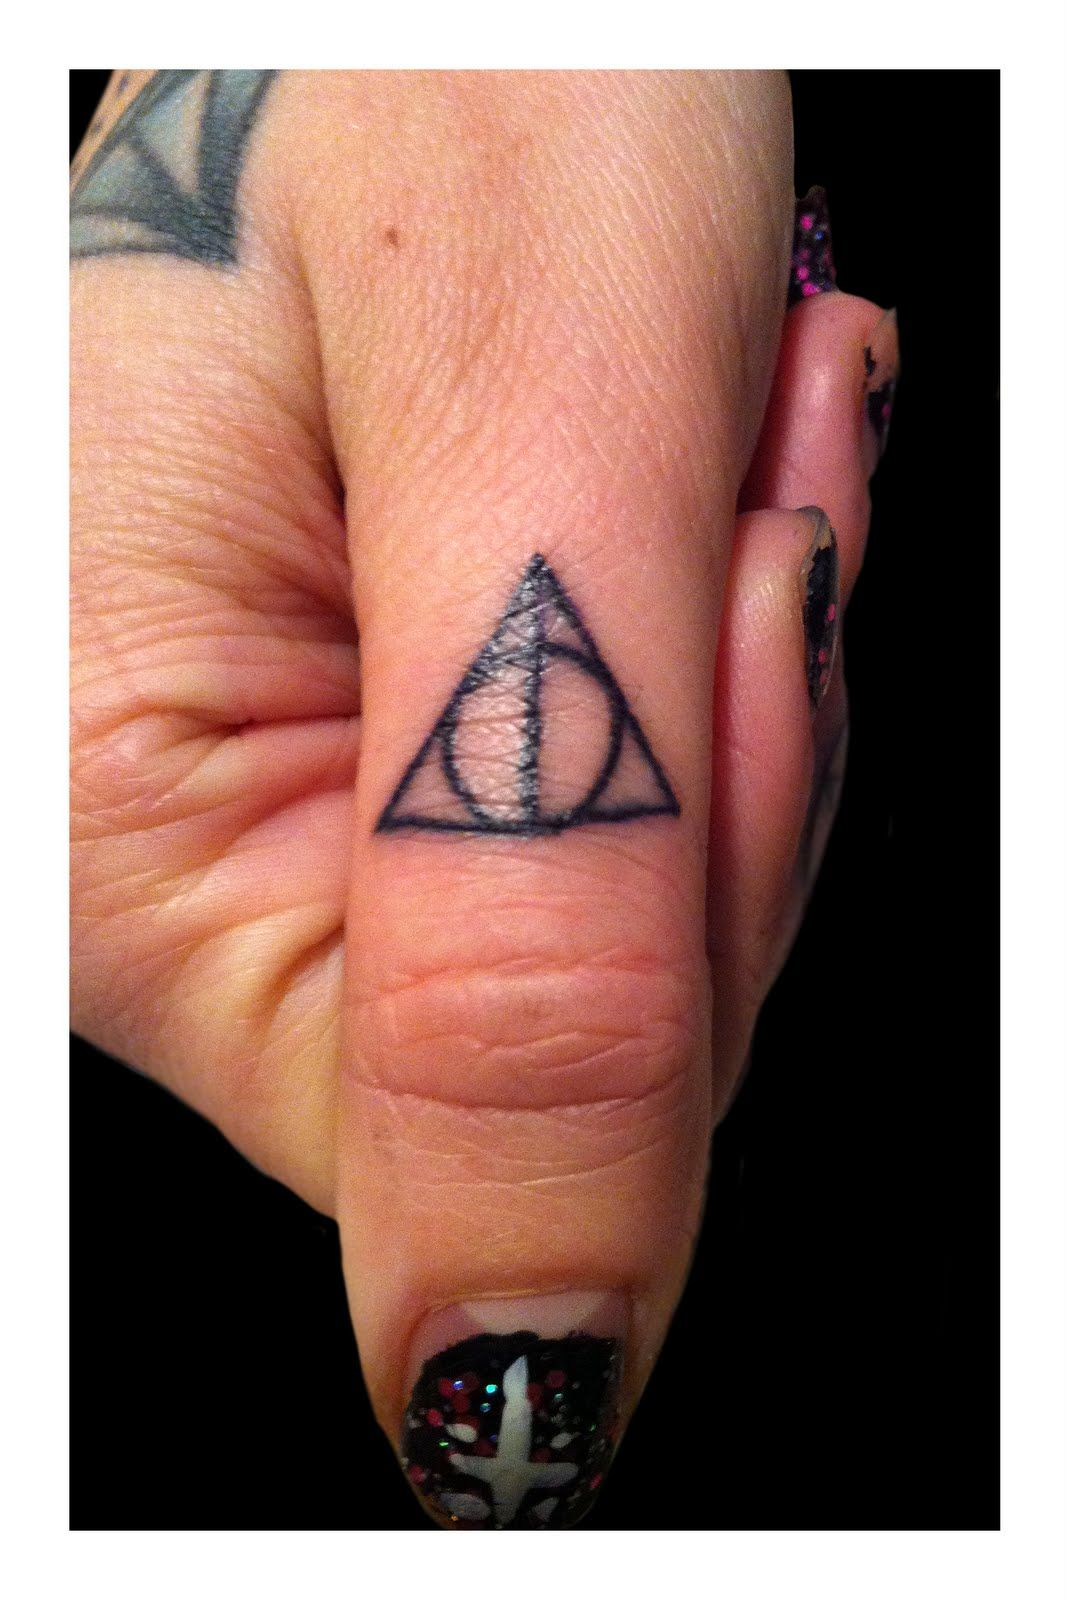 55 romantic wedding ring finger tattoo designs and ideas - Get Of Finger Tattoo Design Ideas Picture Gallery That Will Help You To Choose Your Own Finger Tattoo Design Get Most Popular Finger Tattoos Ideas